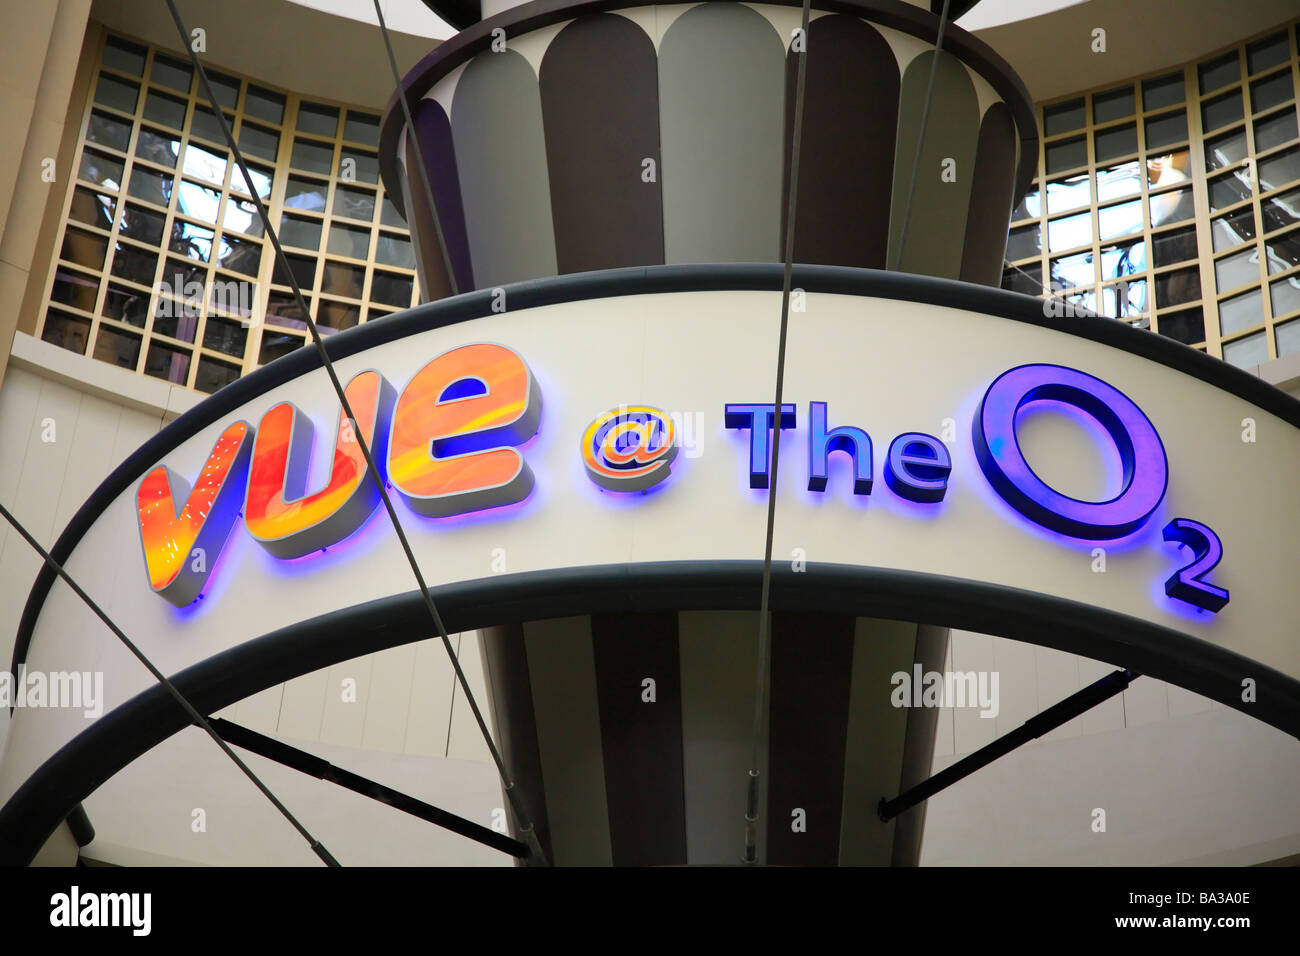 Vue at the O2, Greenwich, London. A Multiplex Cinema inside the Dome. - Stock Image